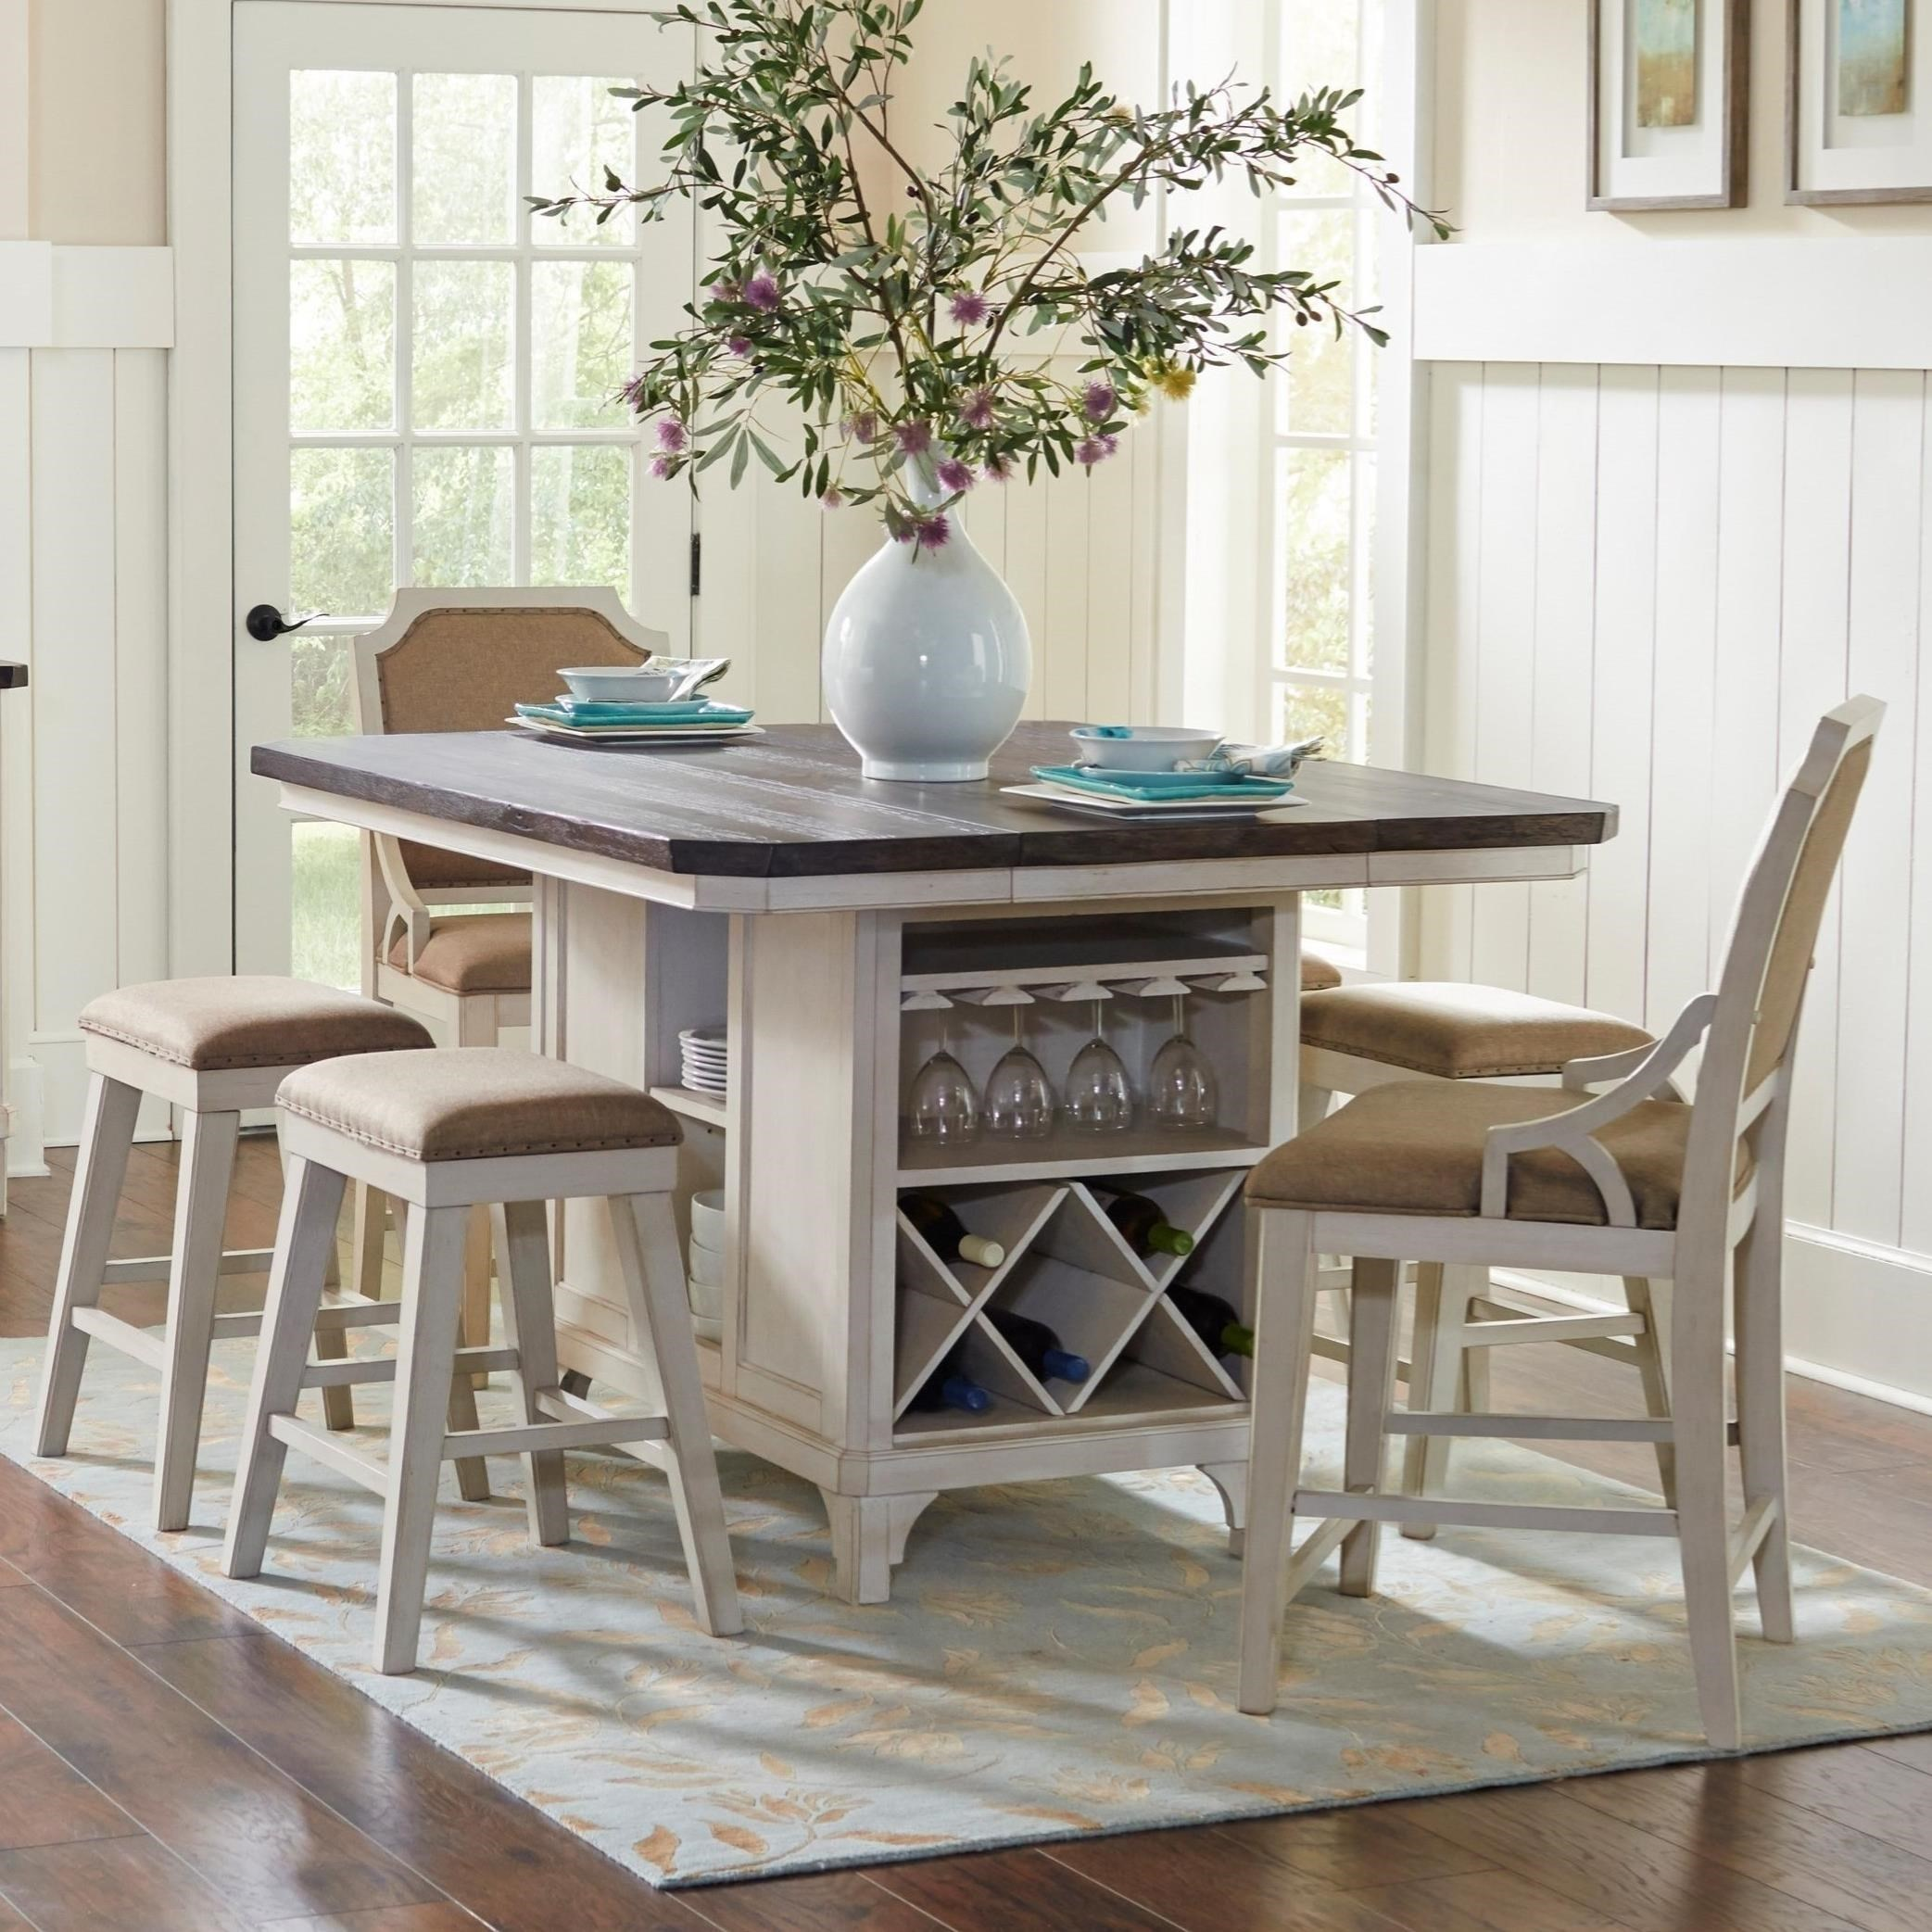 Superieur Avalon Furniture Mystic Cay7 Piece Kitchen Island Table Set ...